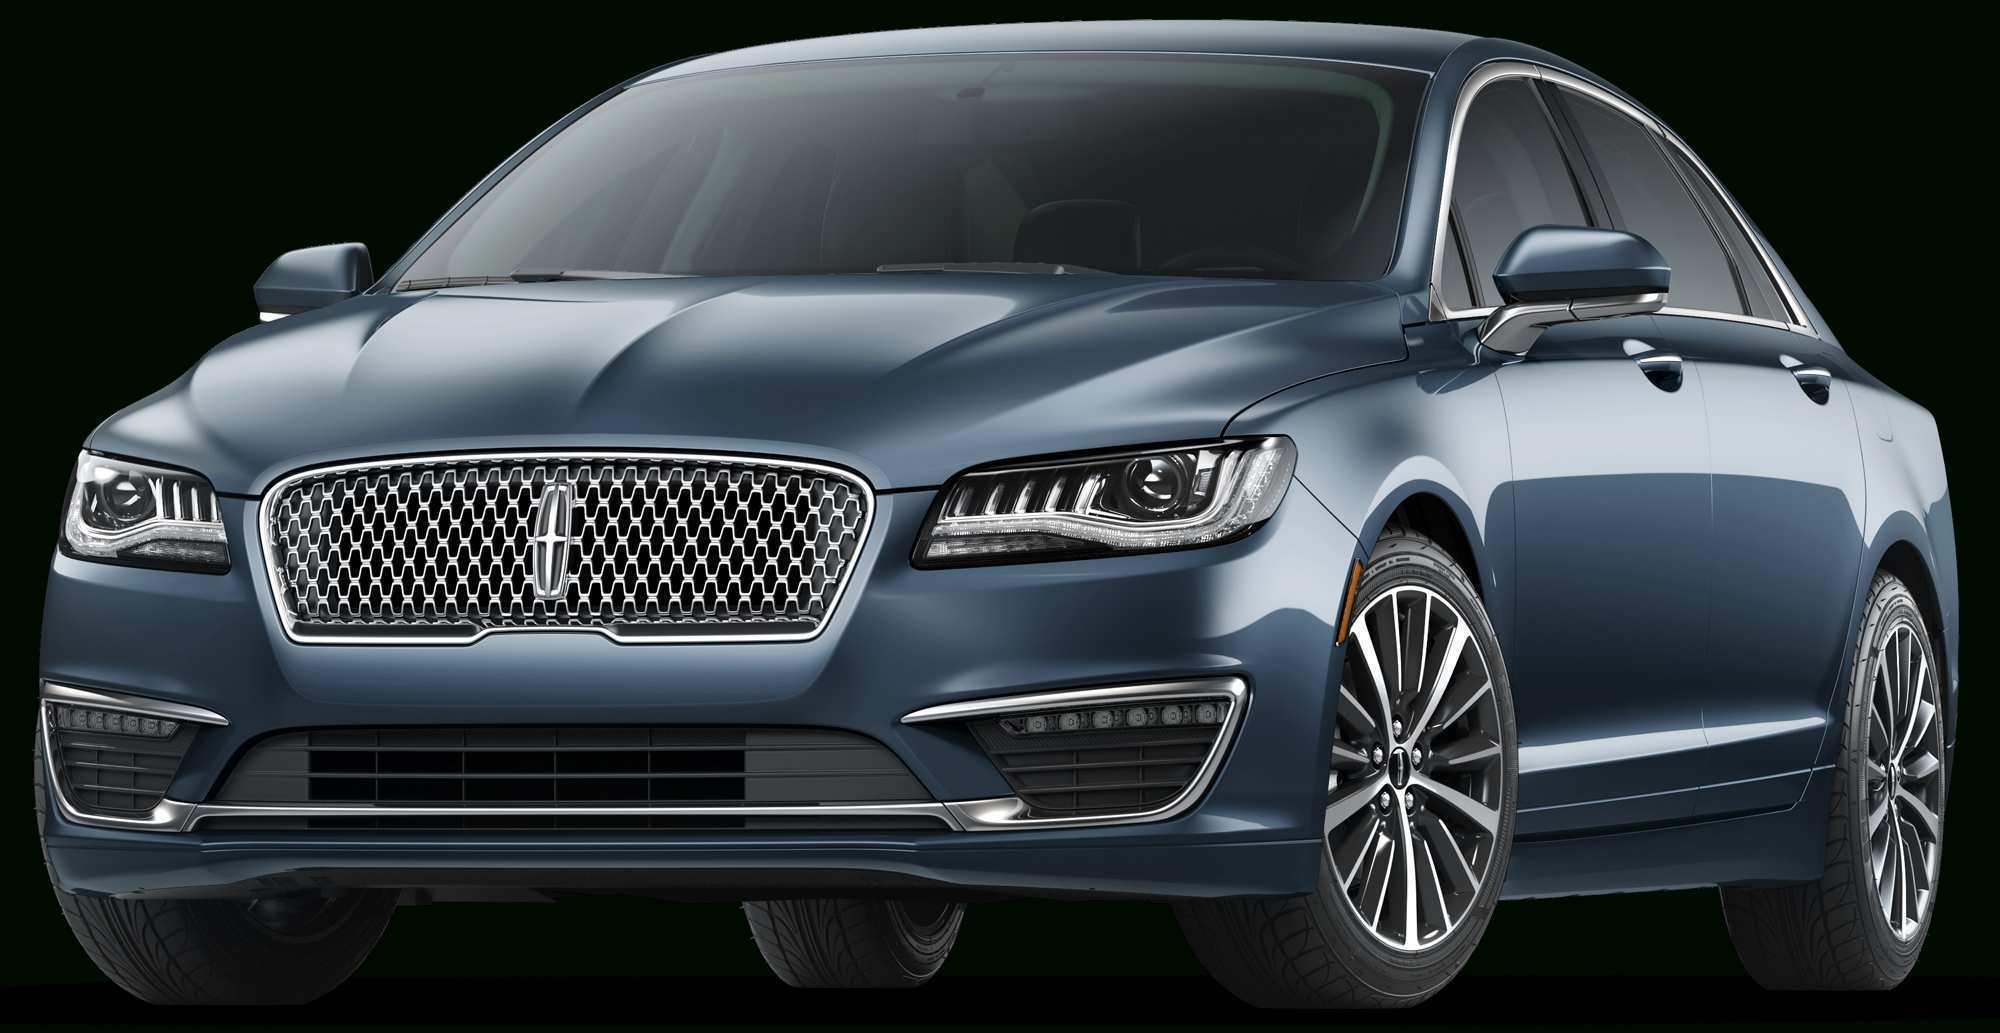 44 All New 2019 Spy Shots Lincoln Mkz Sedan Ratings